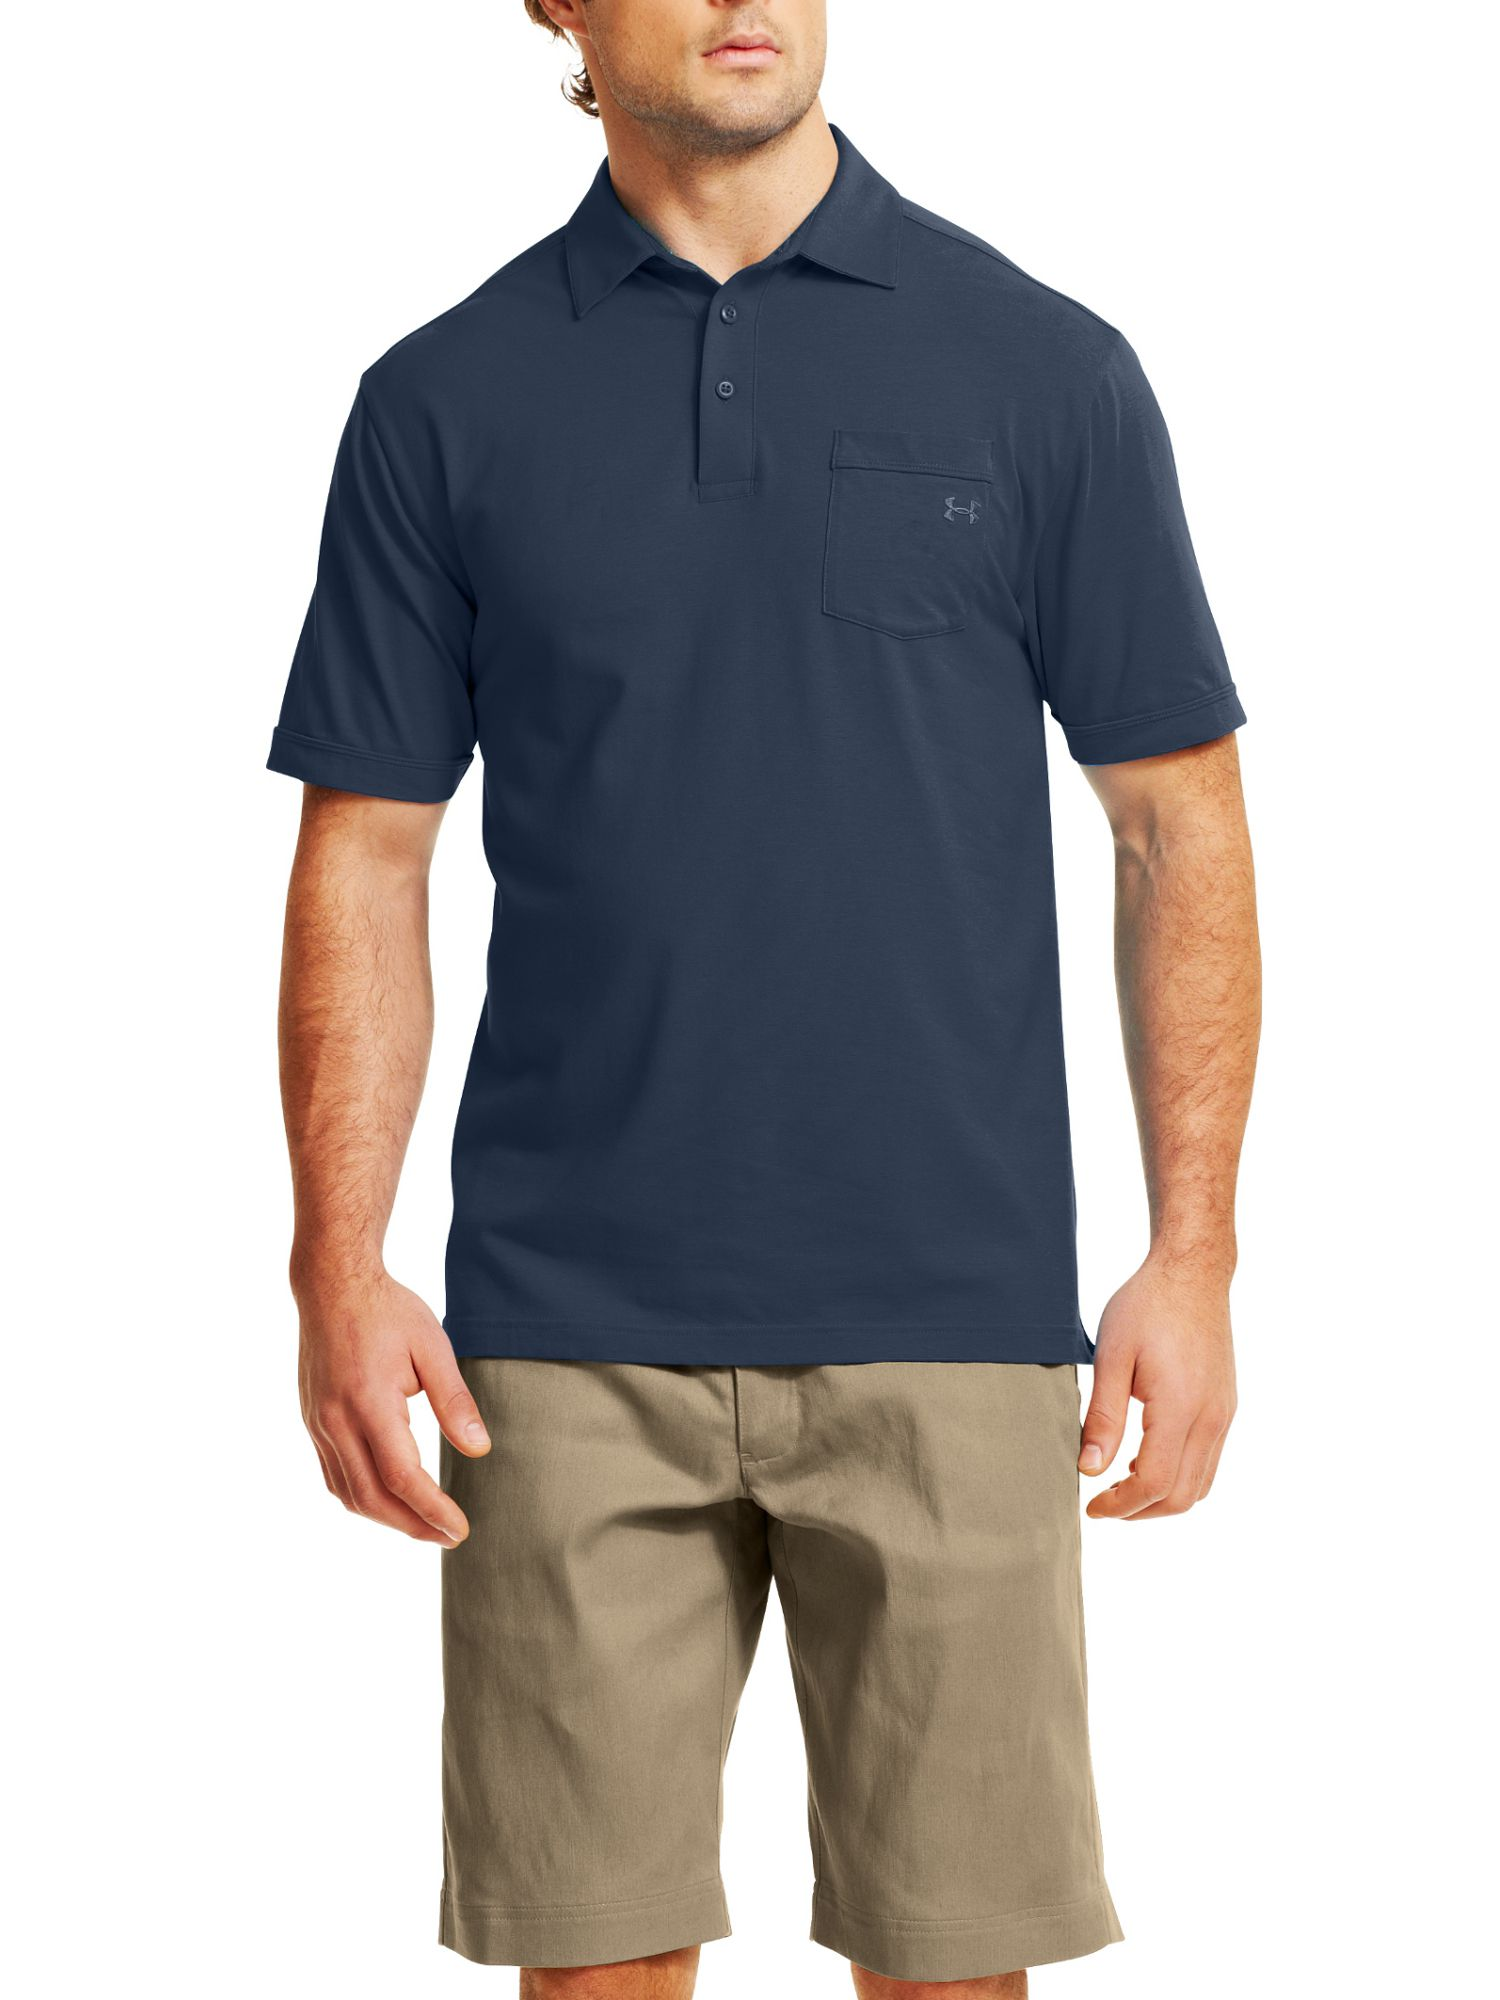 Charged cotton pocket polo